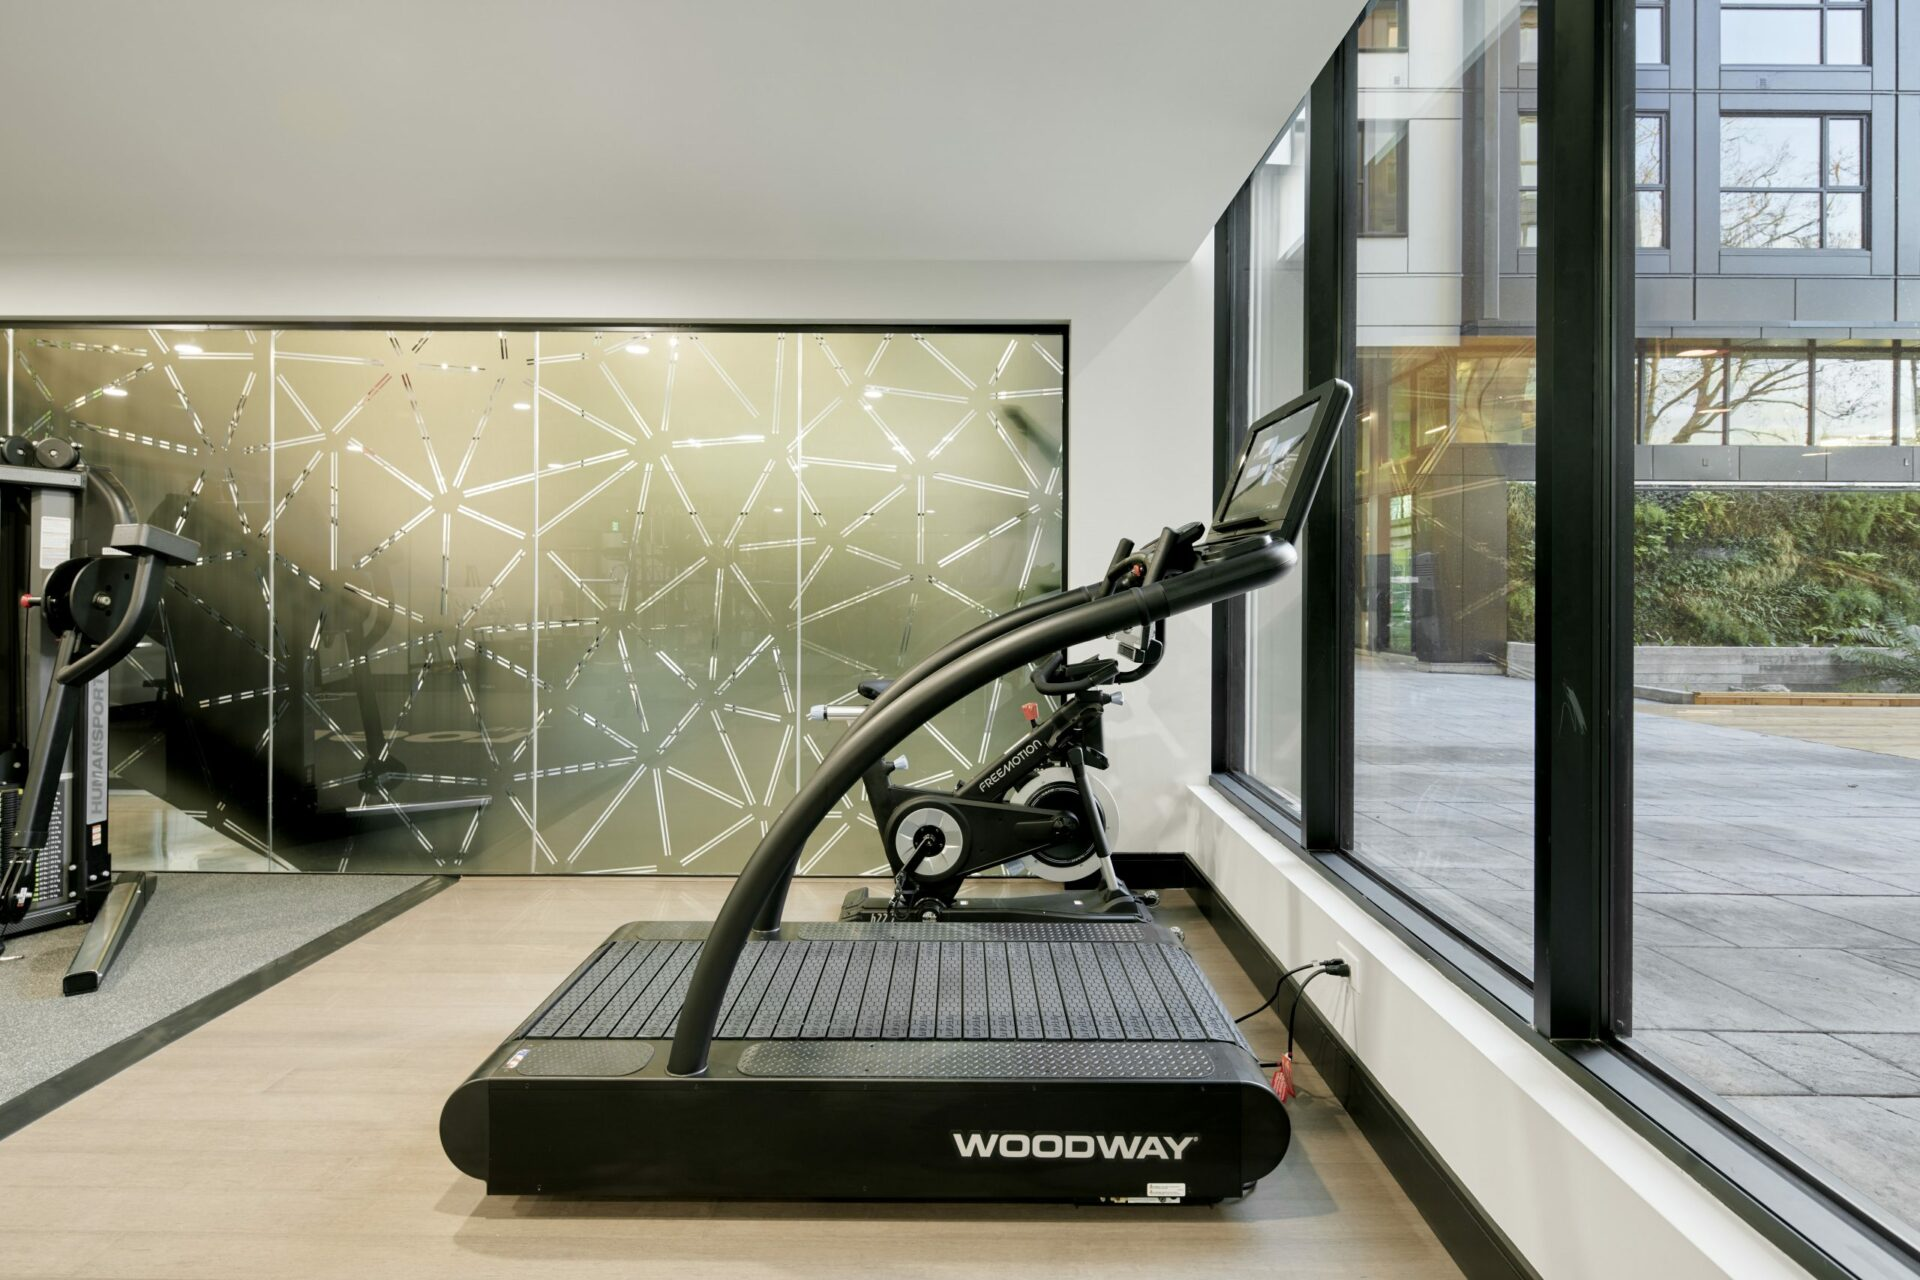 The Logan apartments with woodway treadmills